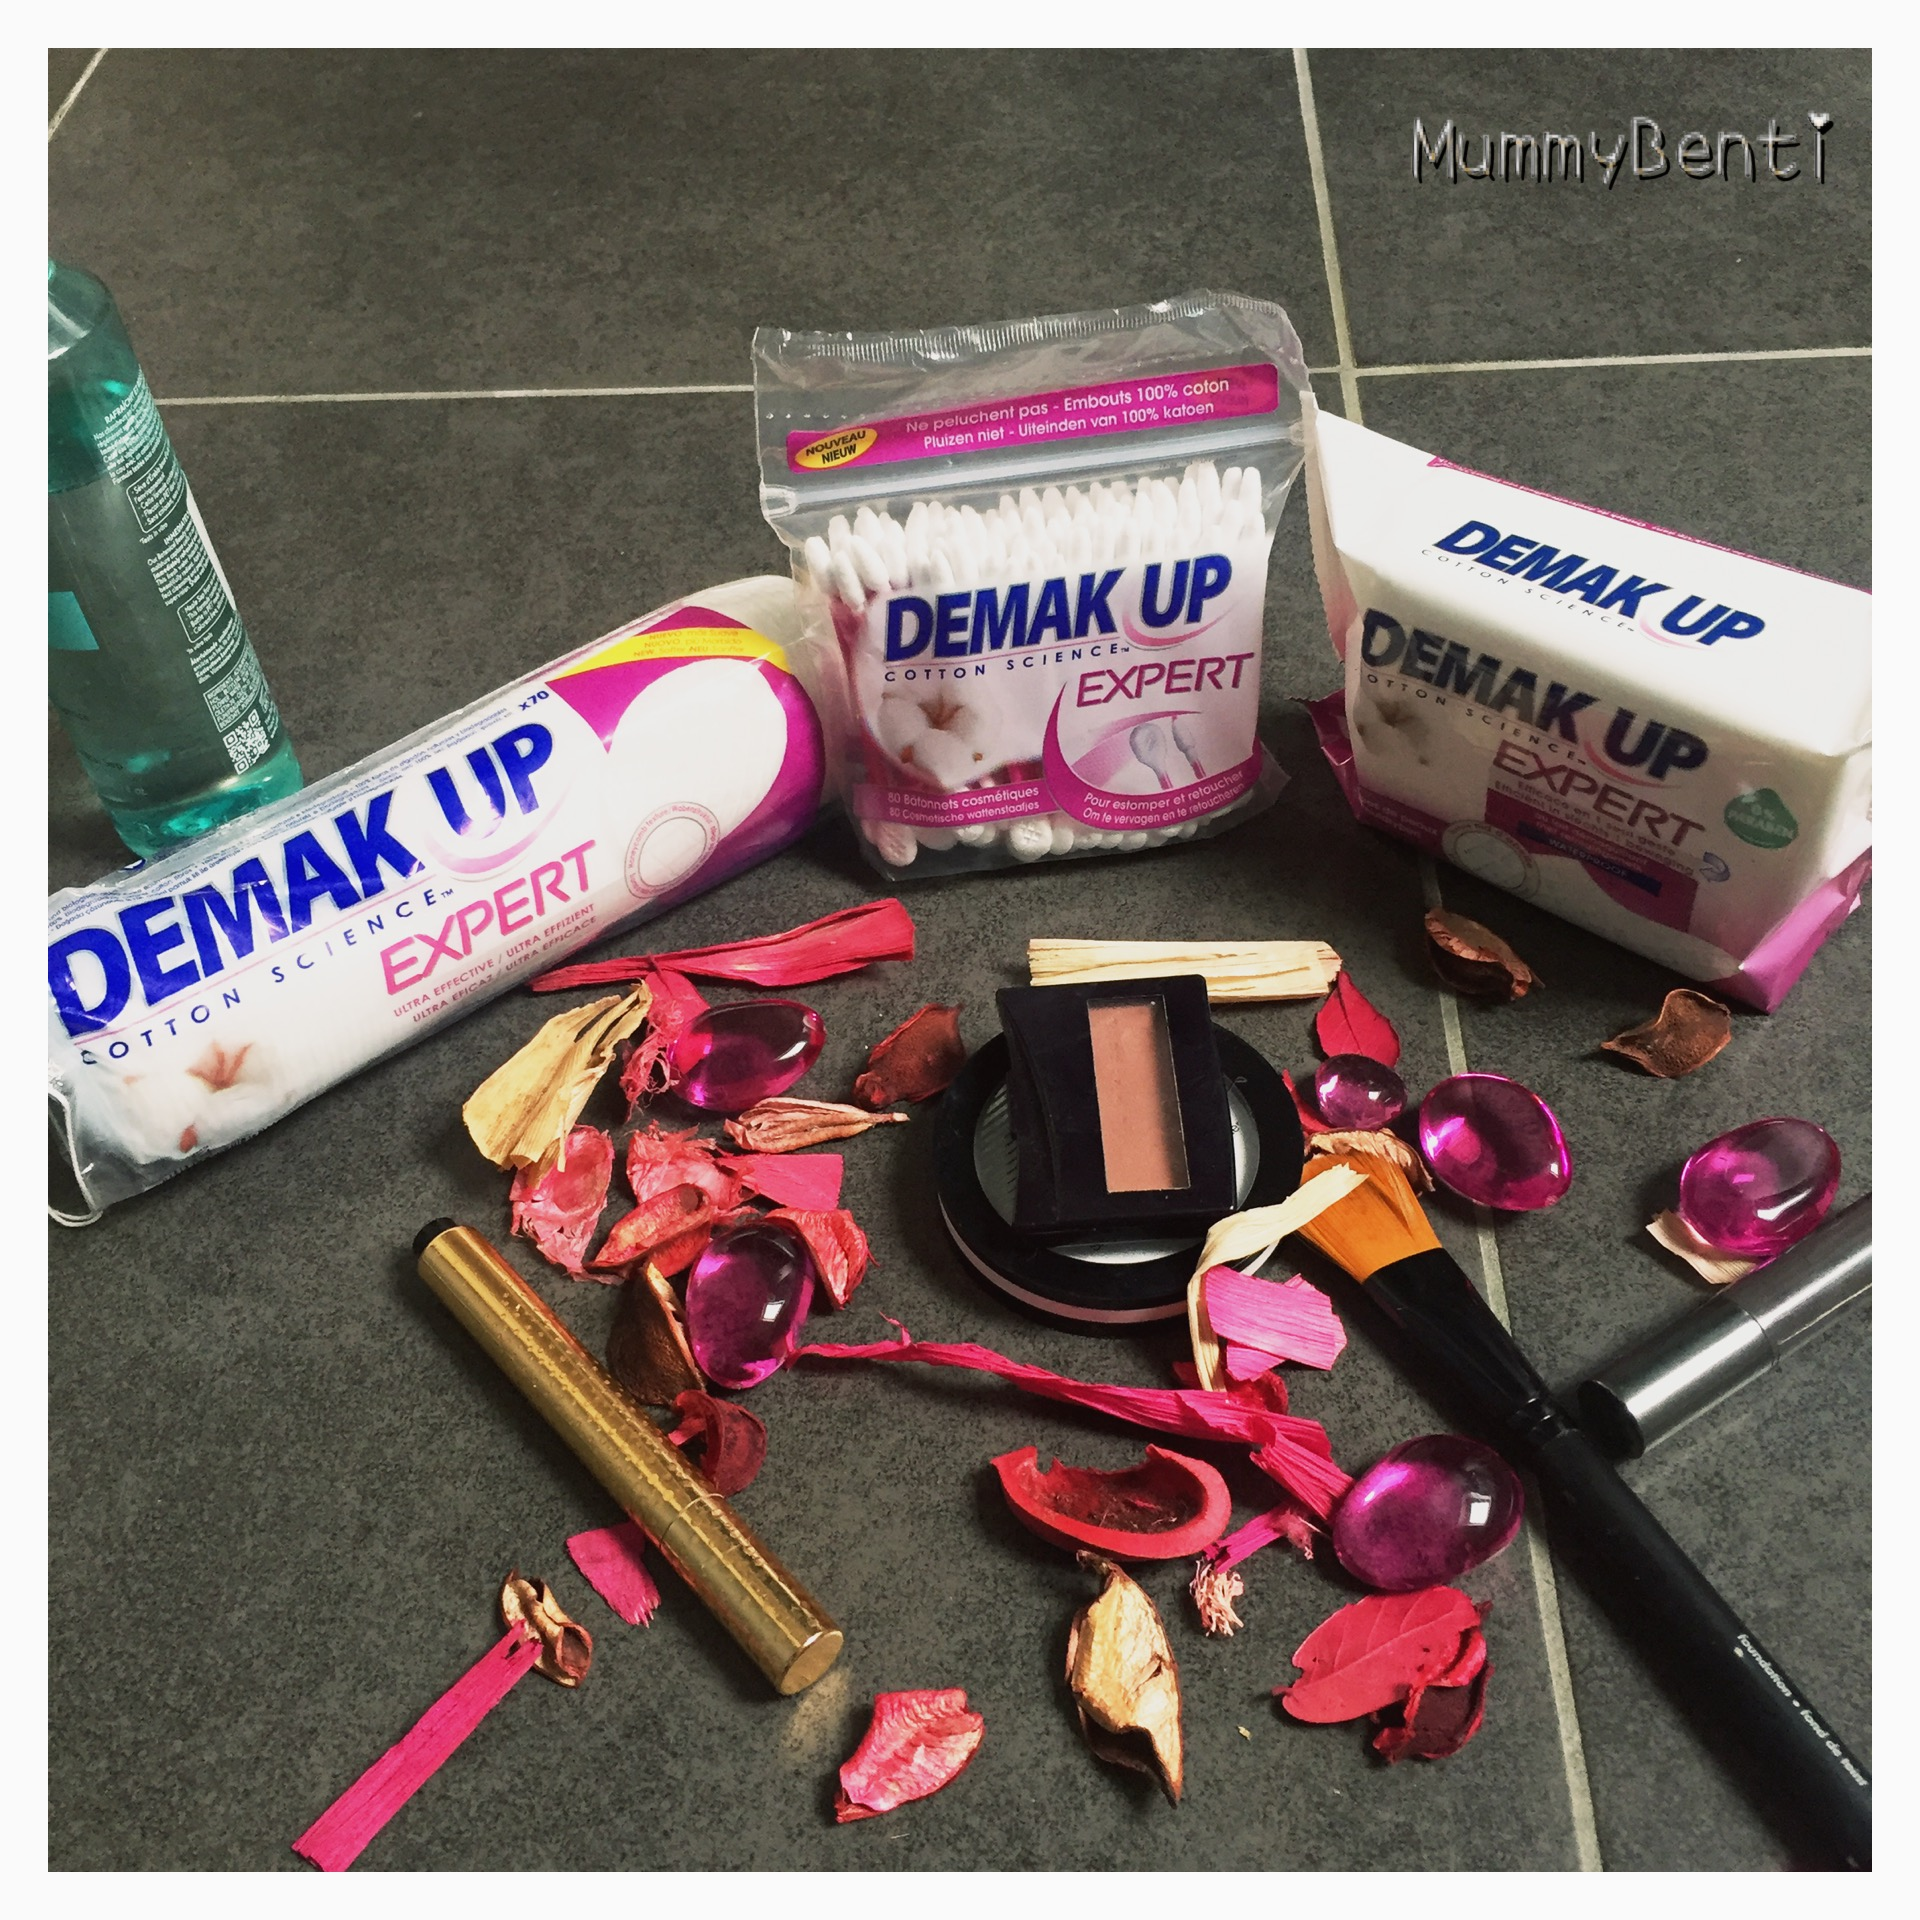 blog mummybenti trnd demak up expert coton beauté